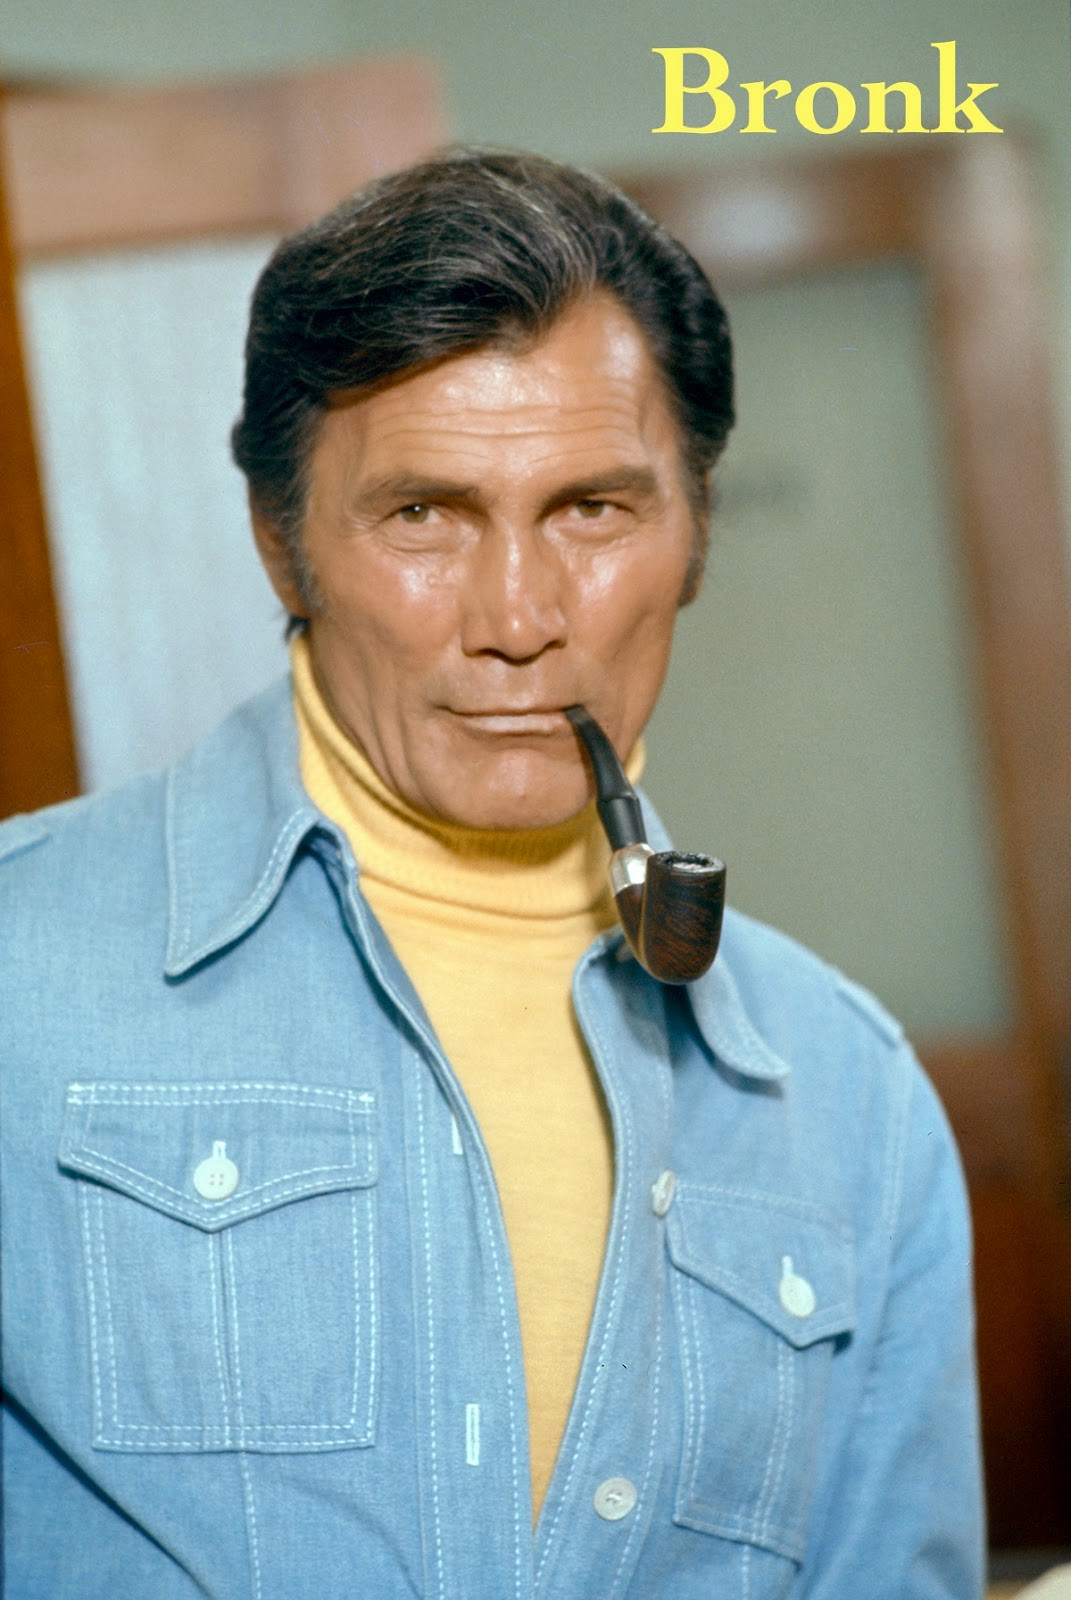 Jack Palance Filmes Cool dear old hollywood: bronk (1975-76) - film locations: banning house